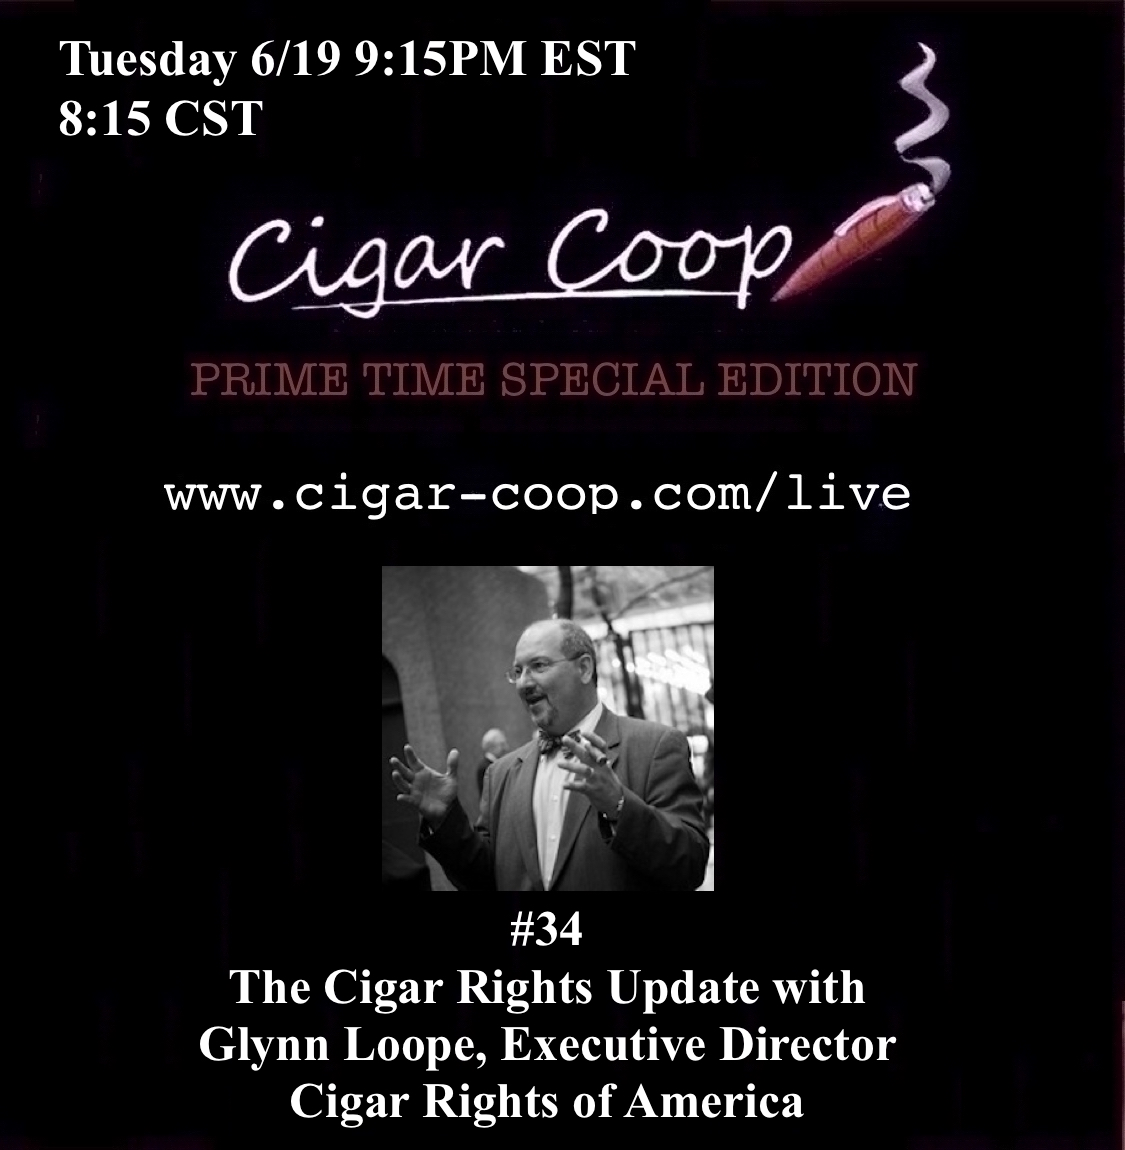 Announcement: Prime Time Special Edition #34 – Glynn Loope, Cigar Rights of America Tues 6/19 9:15pm EST, 8:15pm CST